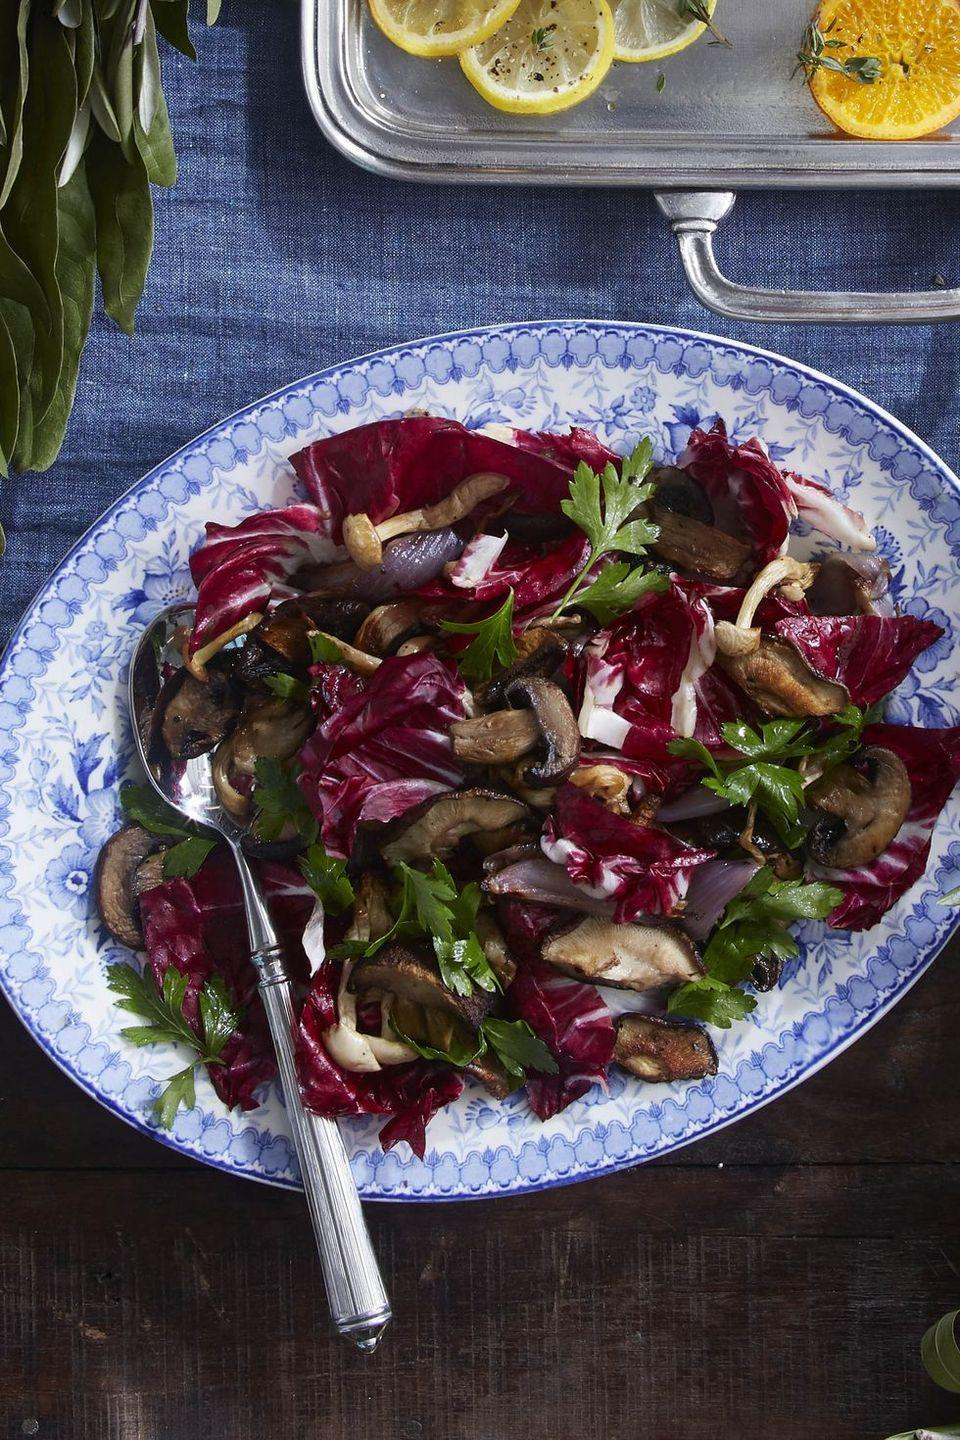 """<p>Drizzle this super simple side with balsamic or sherry vinegar to make the flavors really pop.</p><p><em><a href=""""https://www.countryliving.com/food-drinks/a34347696/roasted-mushrooms-and-radicchio/"""" rel=""""nofollow noopener"""" target=""""_blank"""" data-ylk=""""slk:Get the recipe from Country Living »"""" class=""""link rapid-noclick-resp"""">Get the recipe from Country Living »</a></em></p>"""